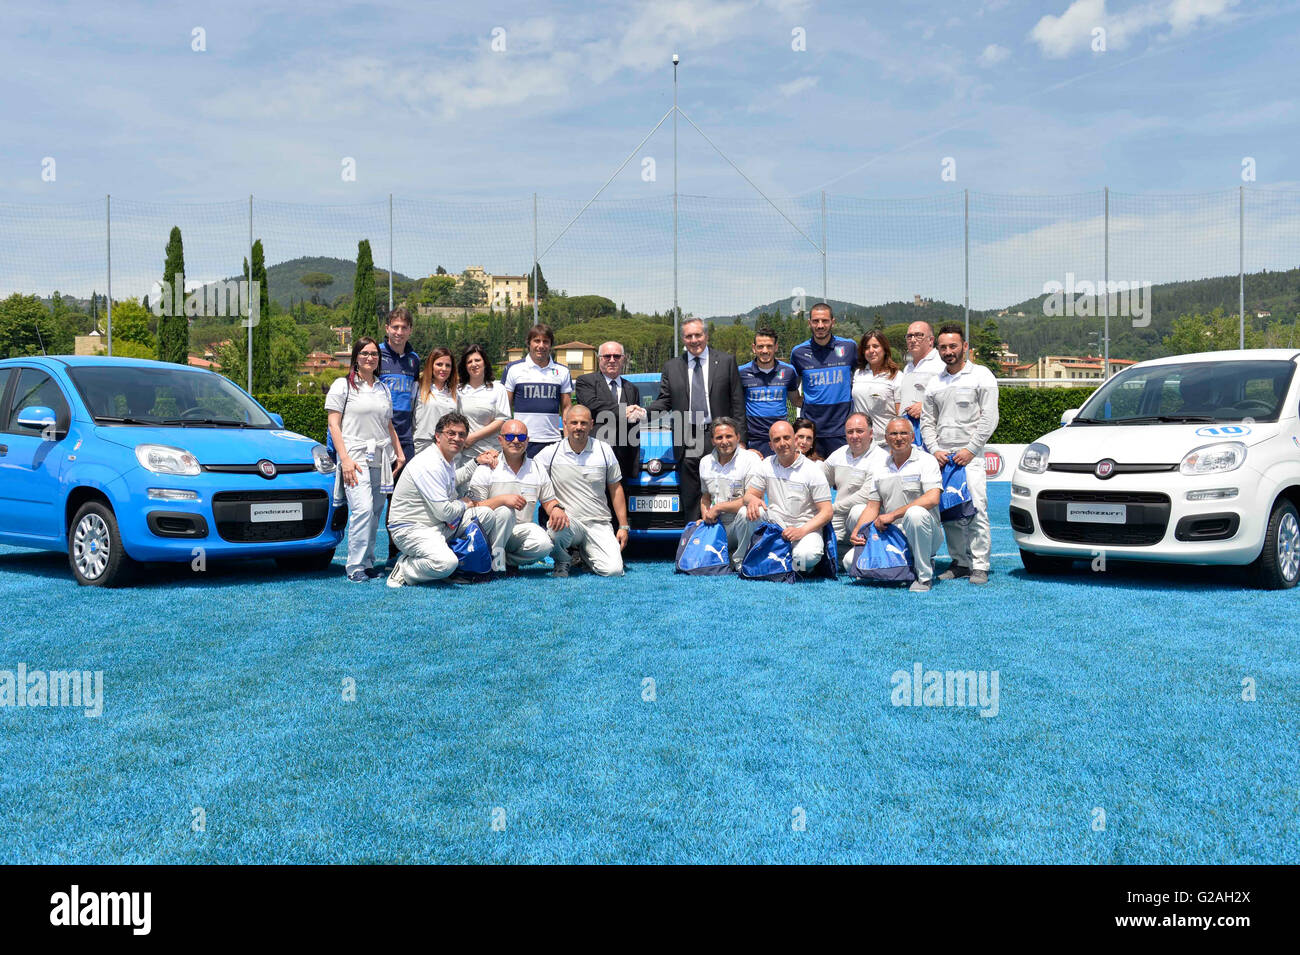 Fiat Chrysler Automobiles (FCA) and the Italian Football Federation (FIGC) presented on Thursday a limited edition Stock Photo